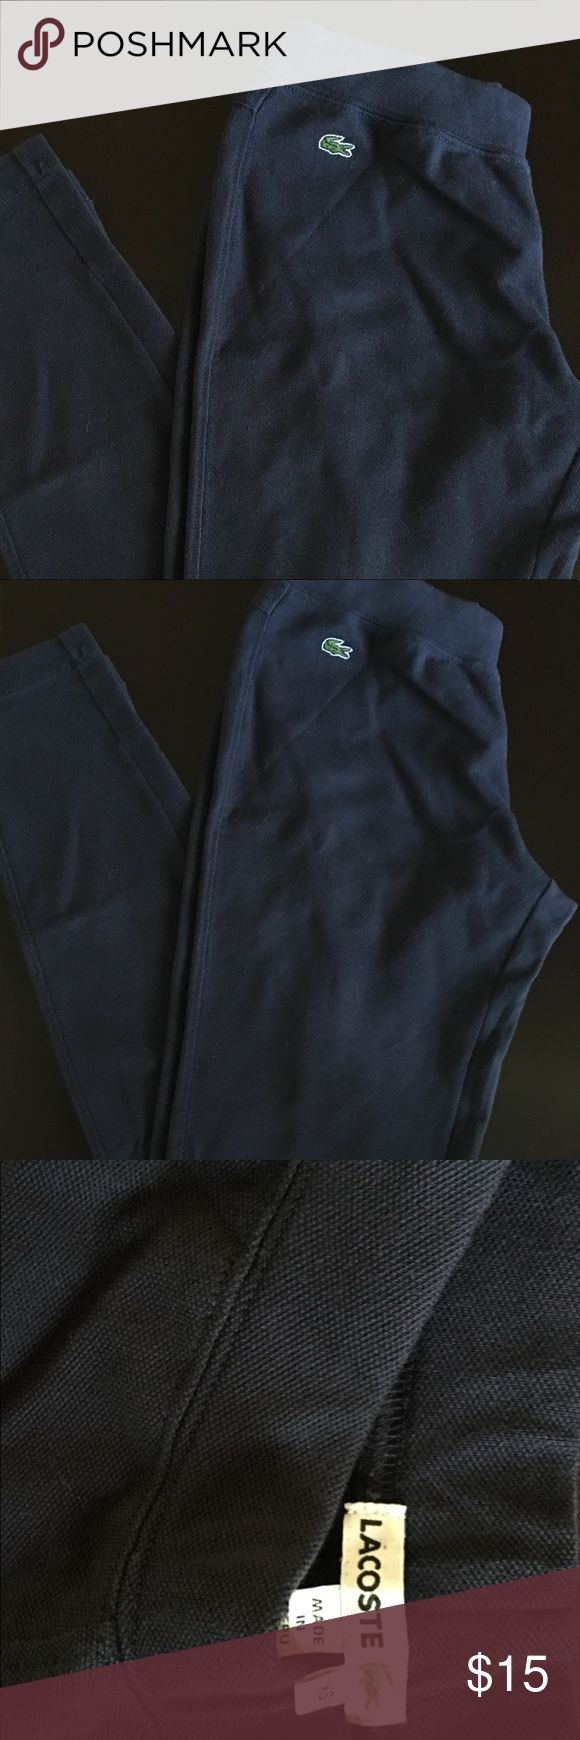 Lacoste Navy Blue Thick legging Lacoste thick may blue legging. Lacoste Pants Leggings